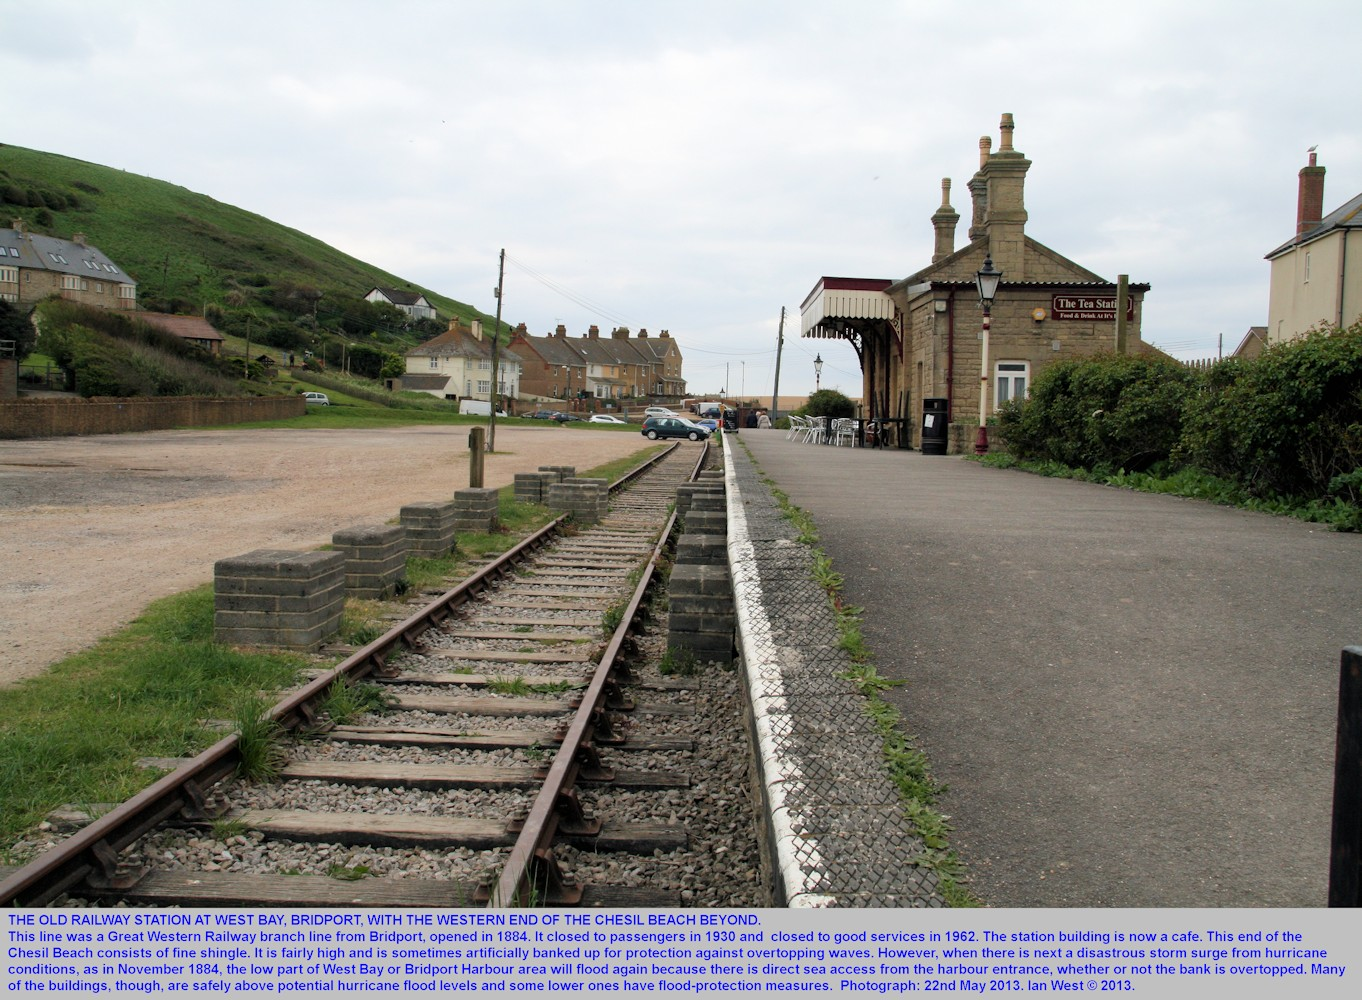 The old railway station at West Bay, Bridport, Dorset, seen in May 2013, with car parking near-by